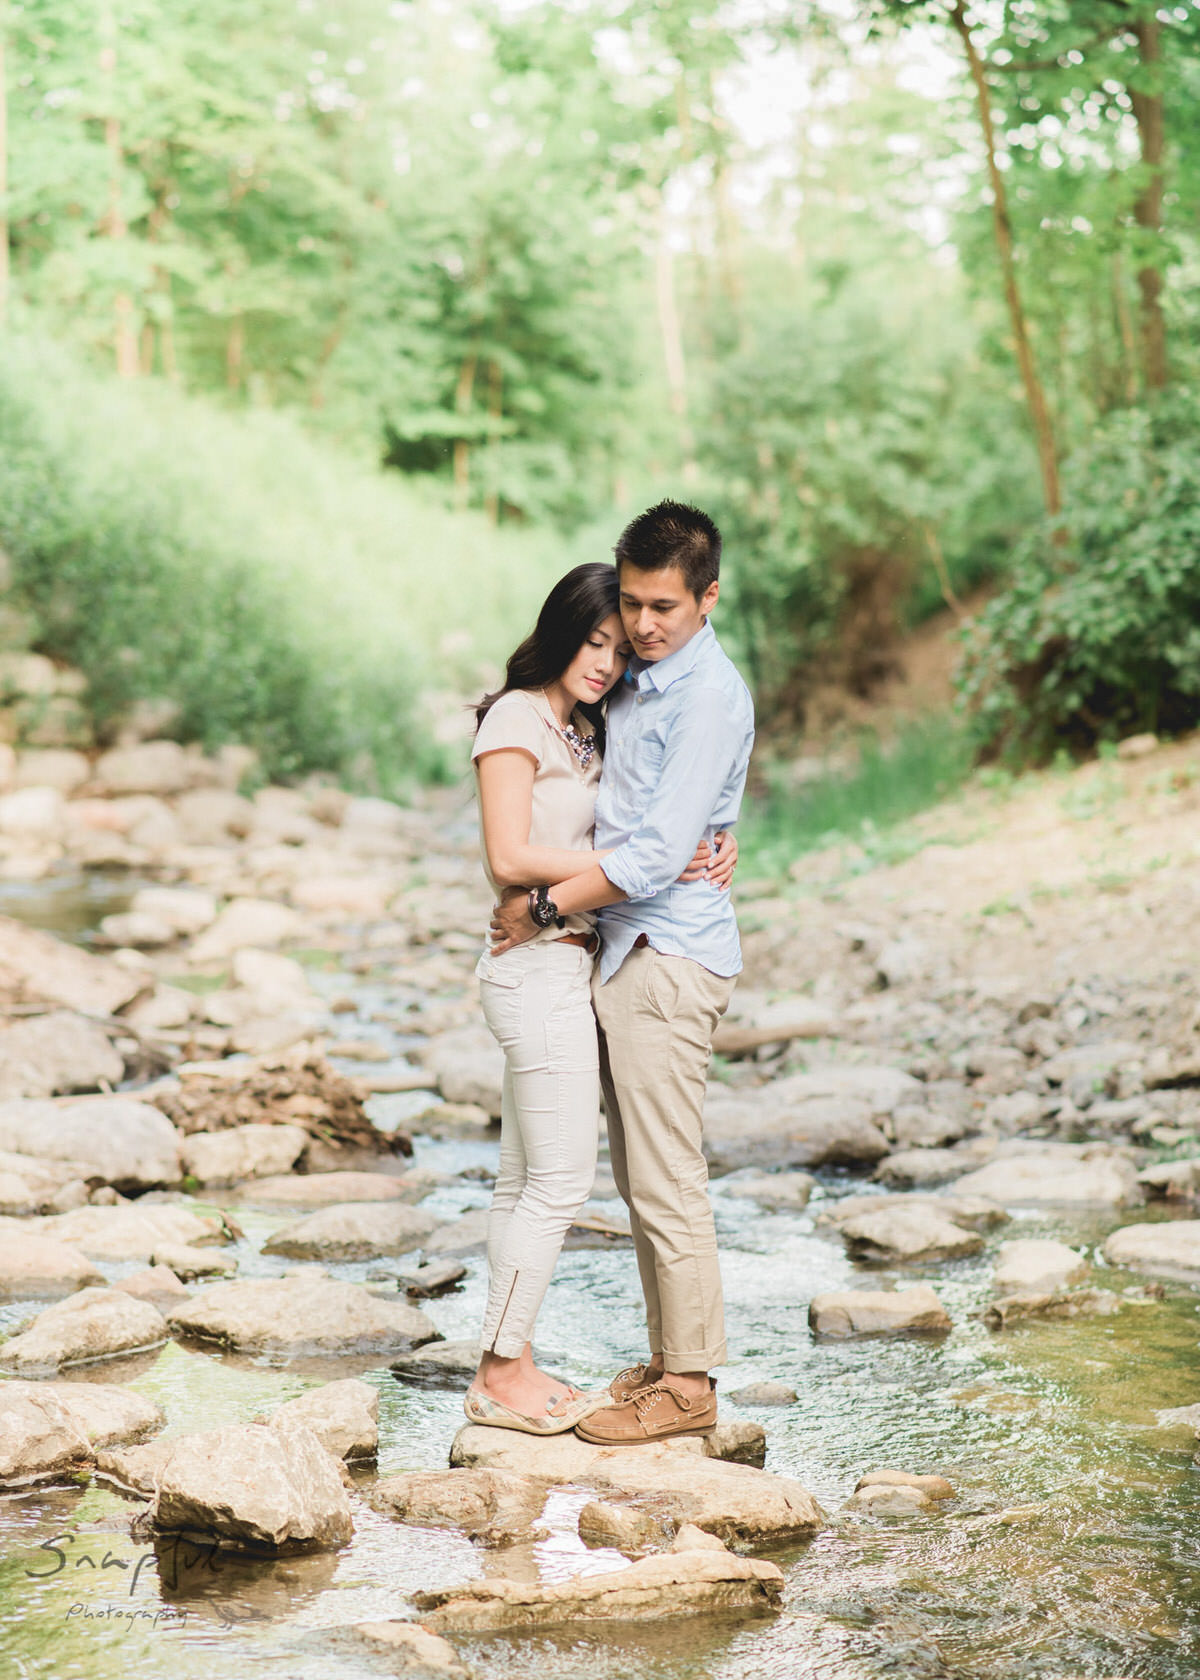 Couple sharing an intimate moment on a rock in a river